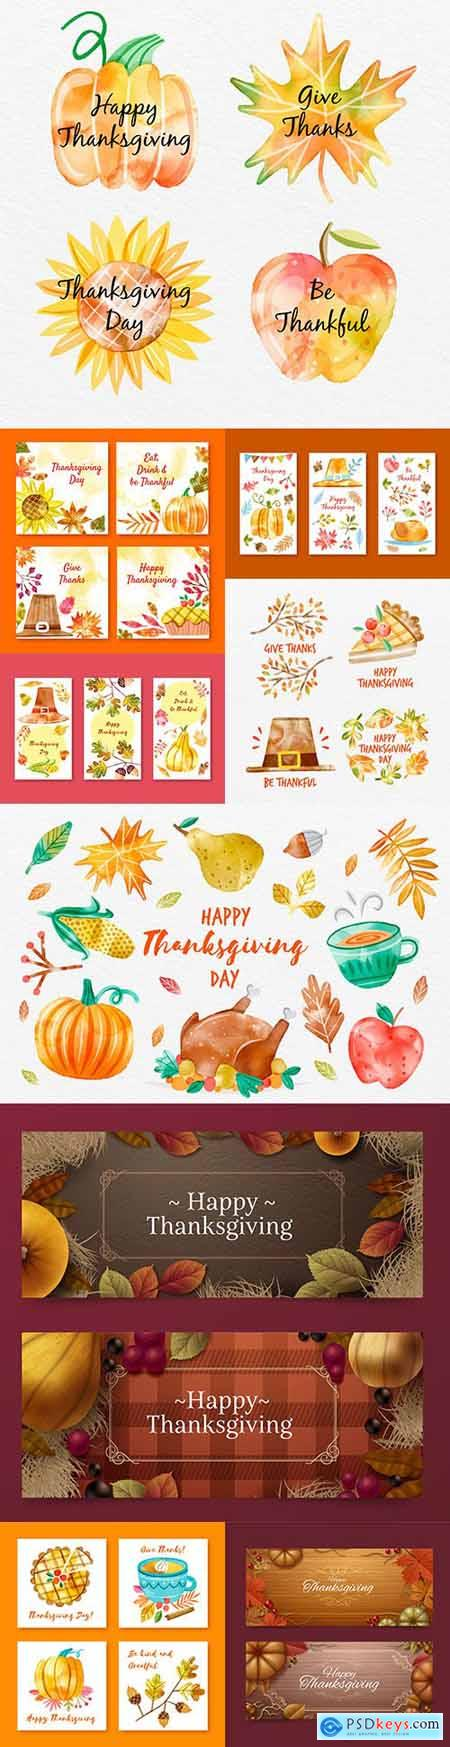 Thanksgiving collection of instagram watercolor design posts